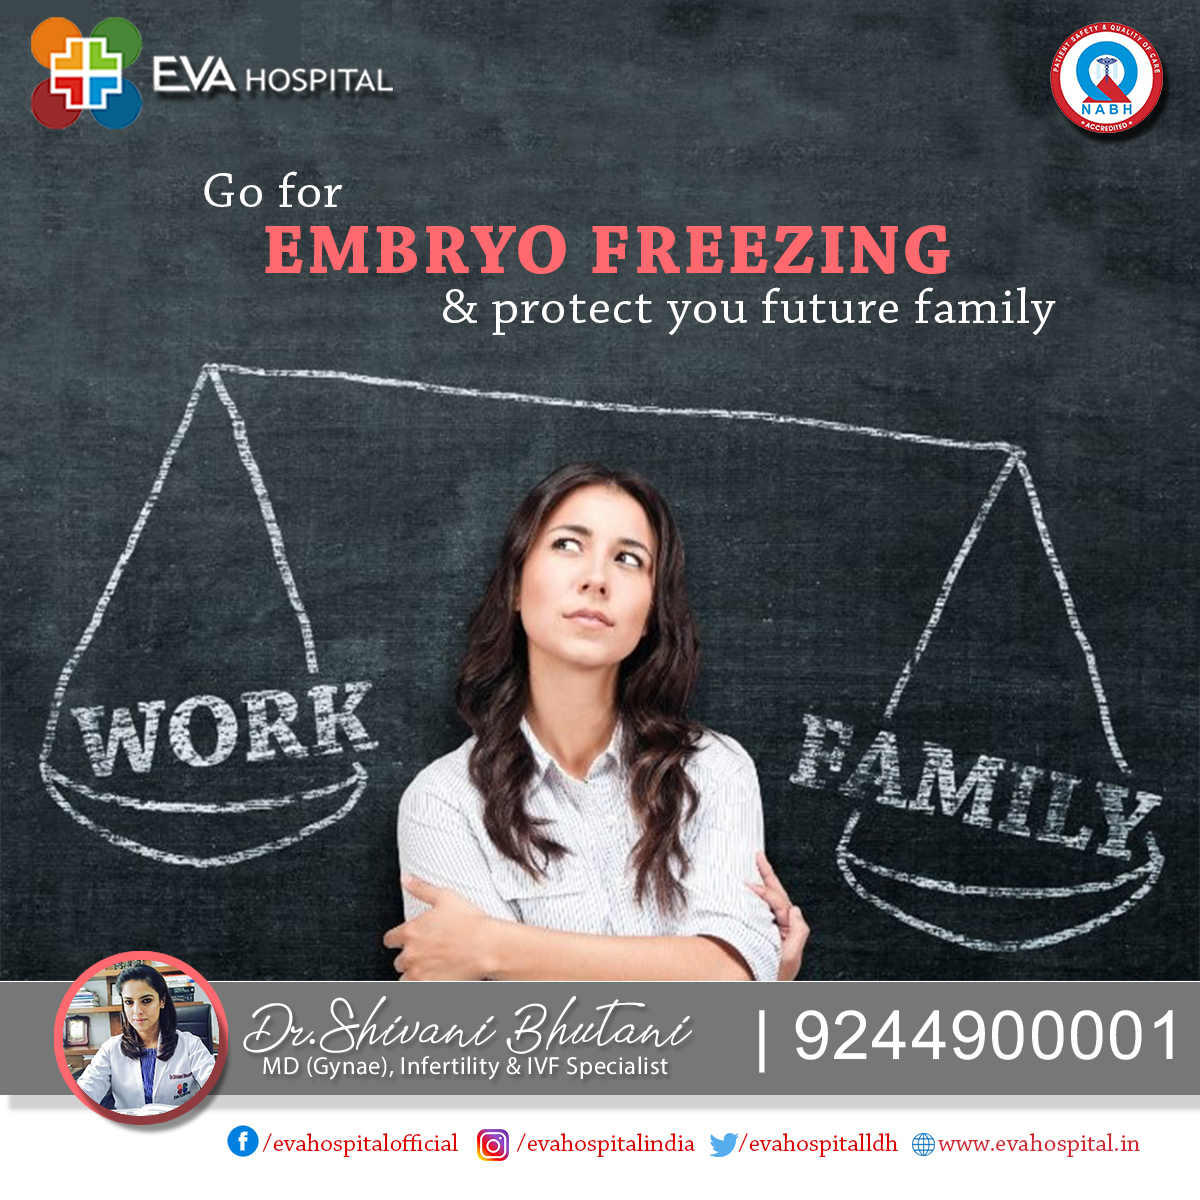 """""""Too busy"""" to consider starting a family just yet? EMBRYO FREEZING is for you."""